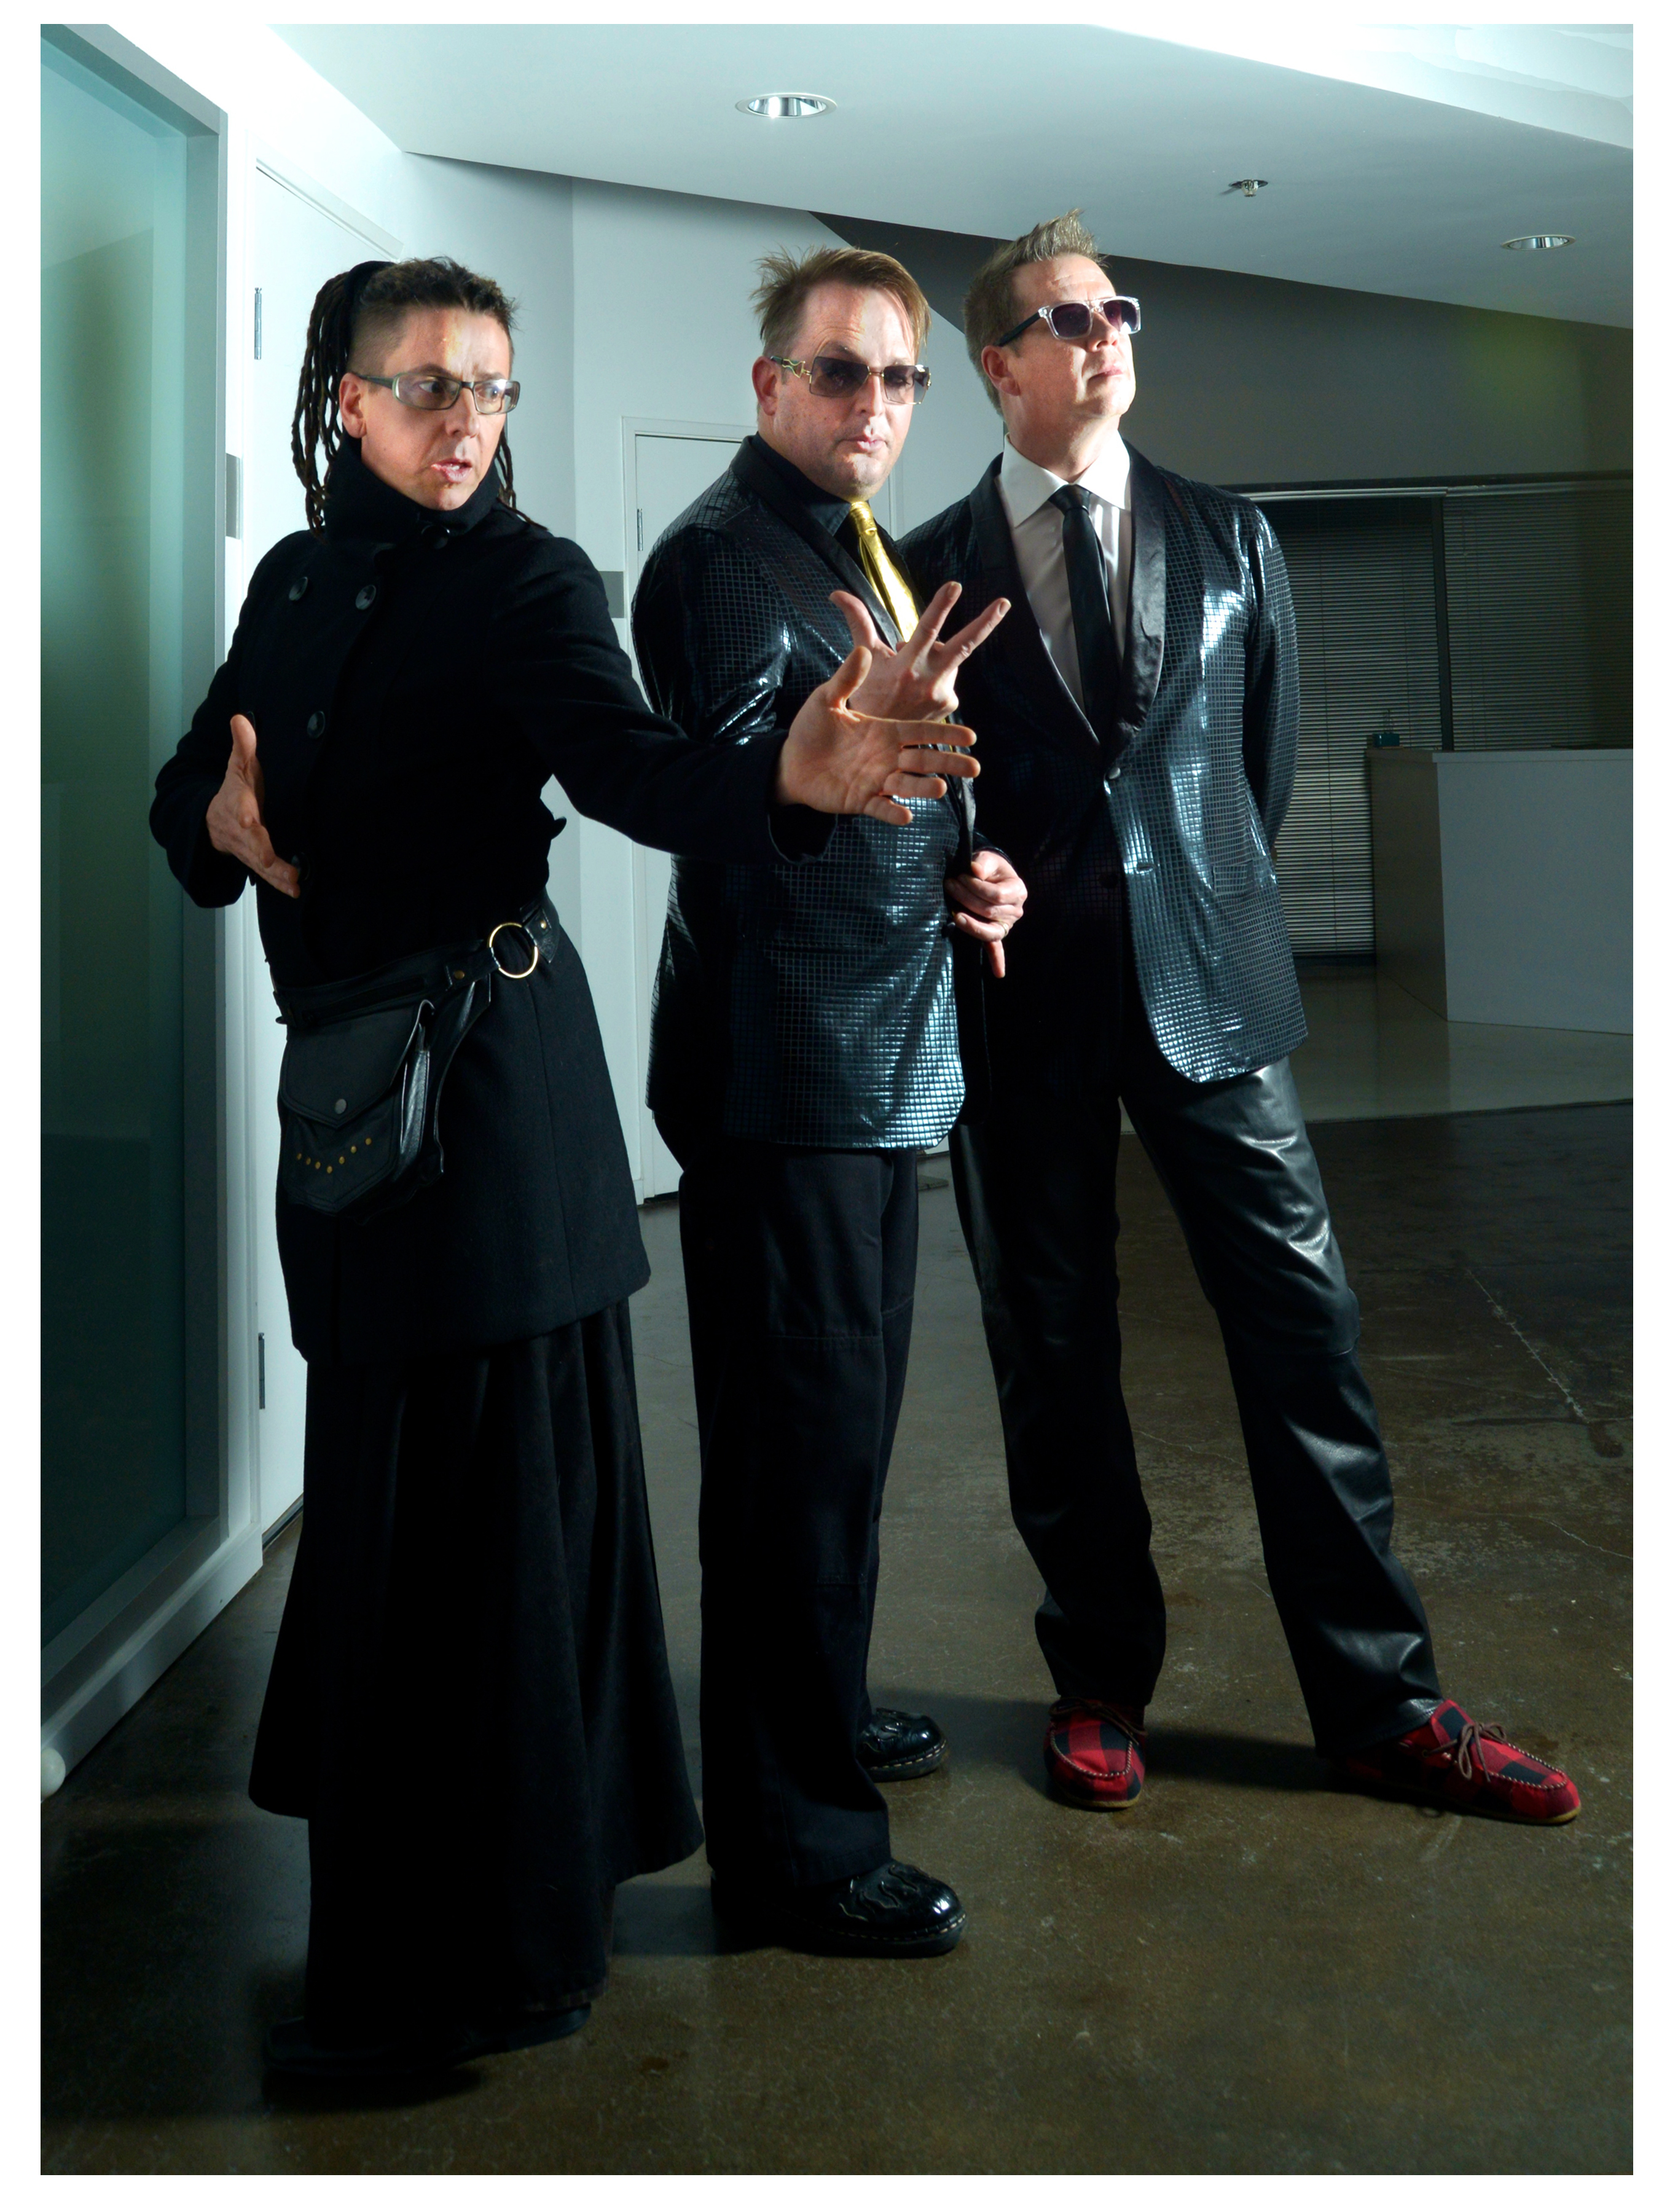 Information Society circa 2014. / Wil Foster, Rockcandyphoto.com